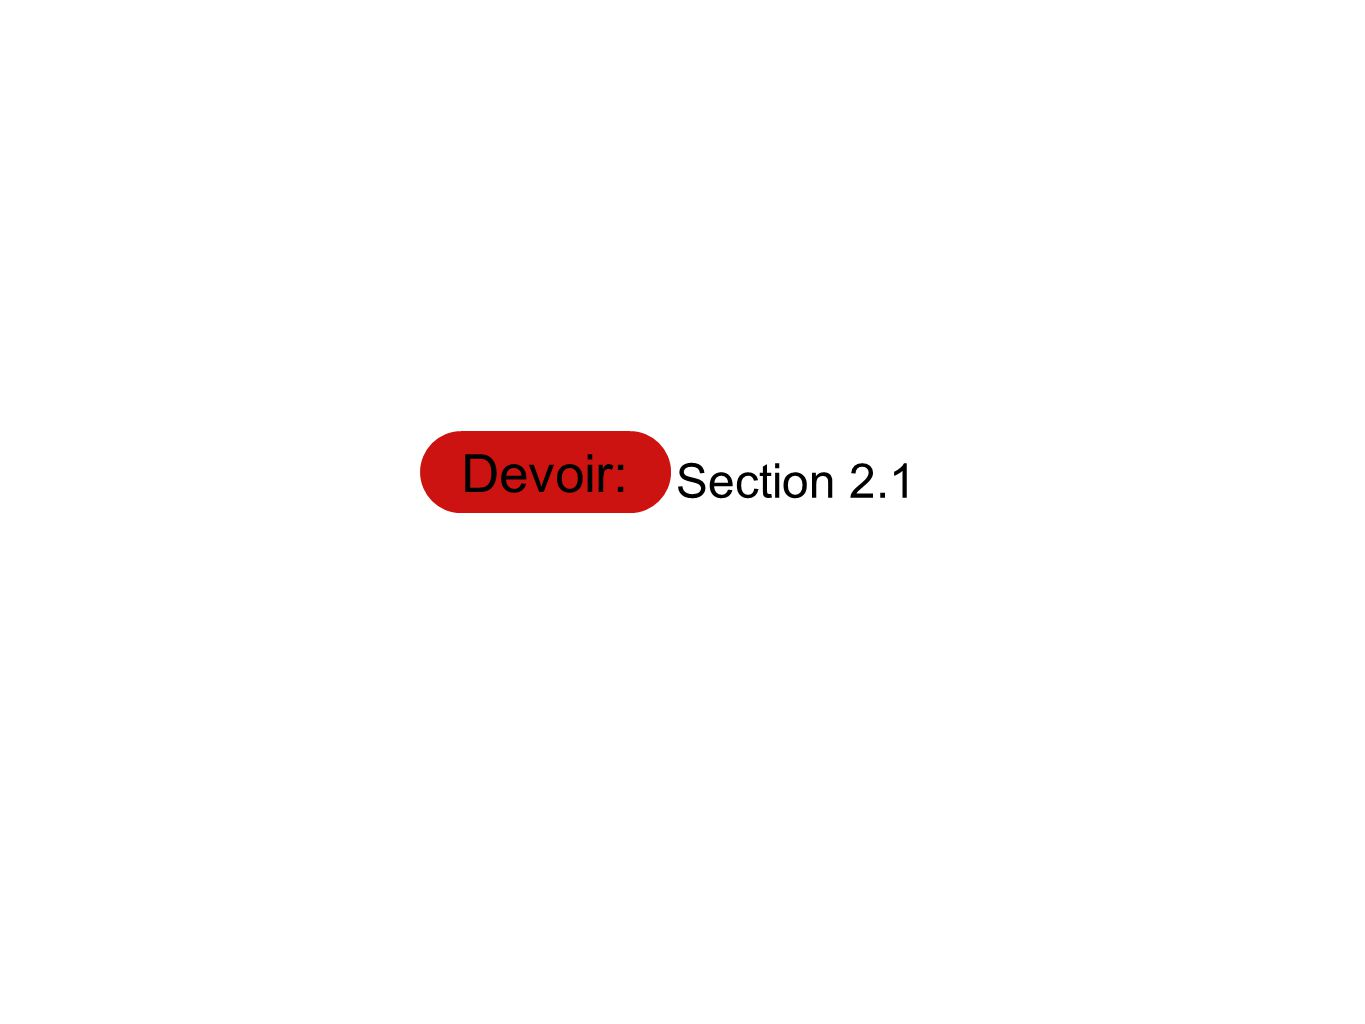 Devoir: Section 2.1